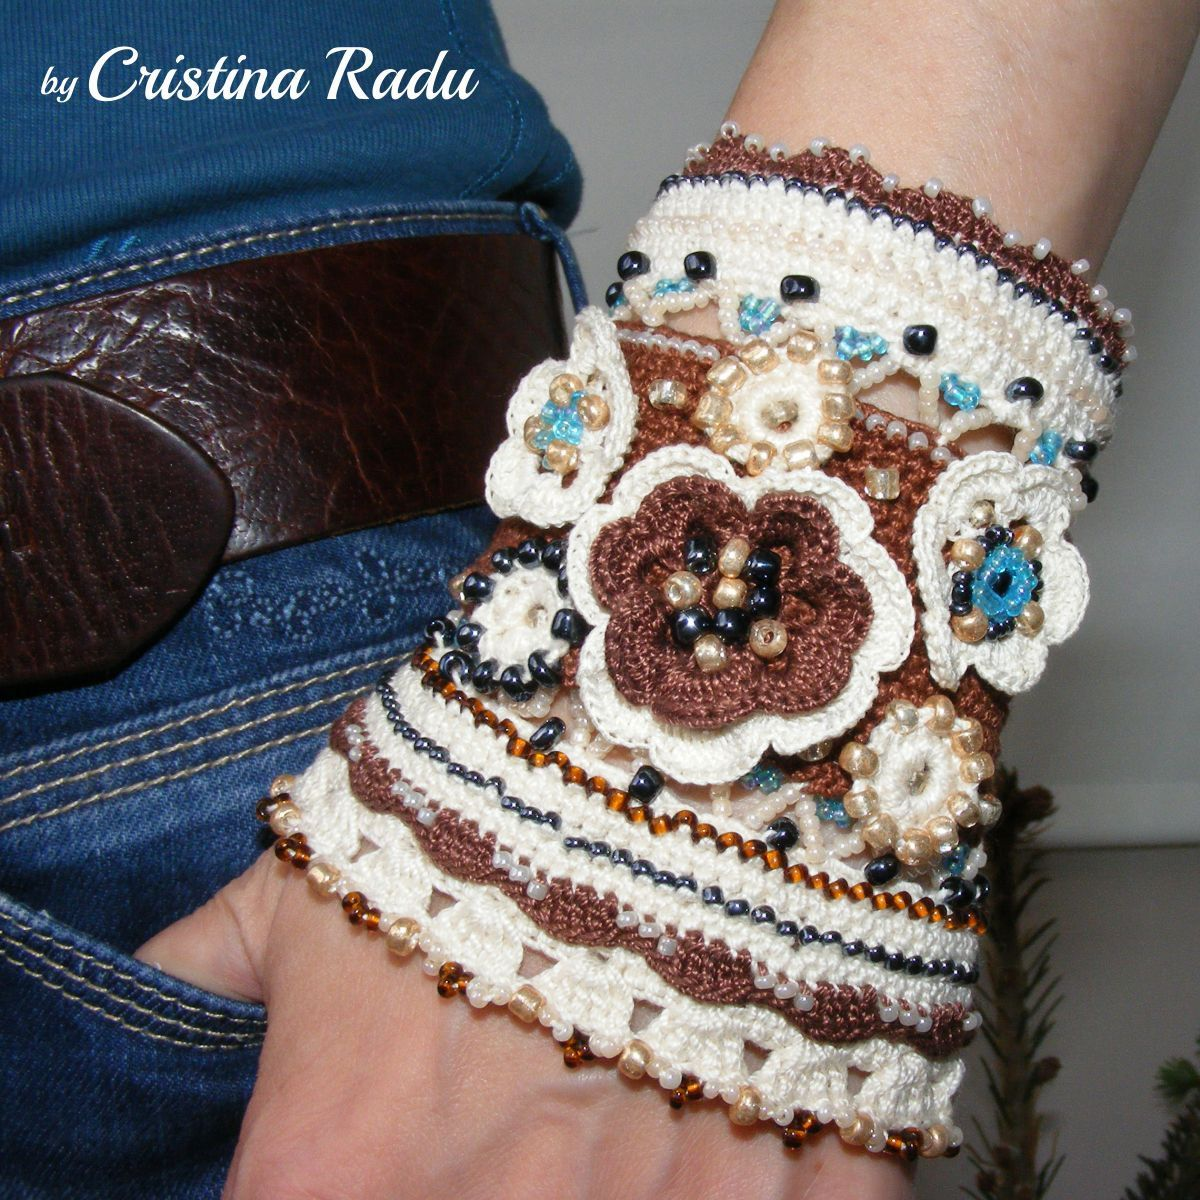 Bracelet boho chic crocheted, crochet boho cuff, ooak ethno chic wristband, brown and cream crochet bracelet, cotton bracelet for woman - pinned by pin4etsy.com